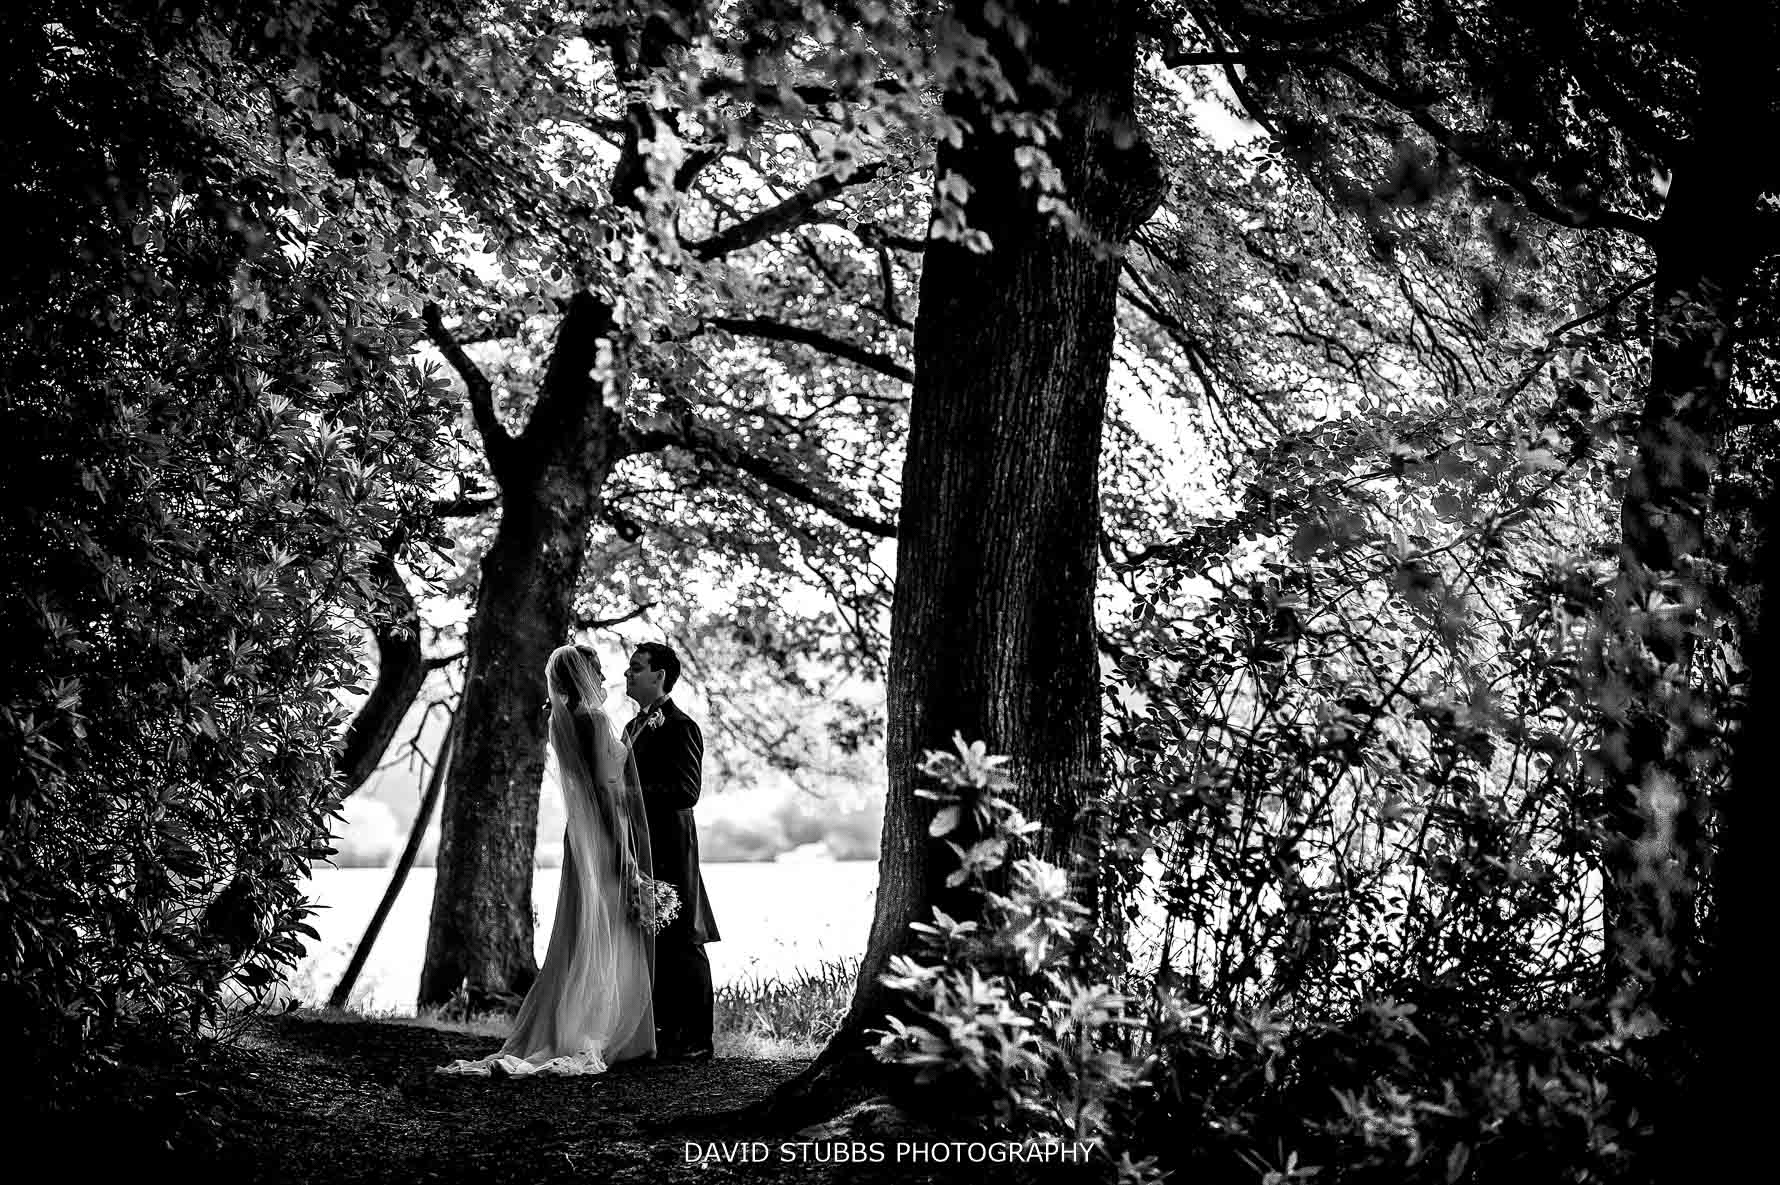 phot of newly weds in woods